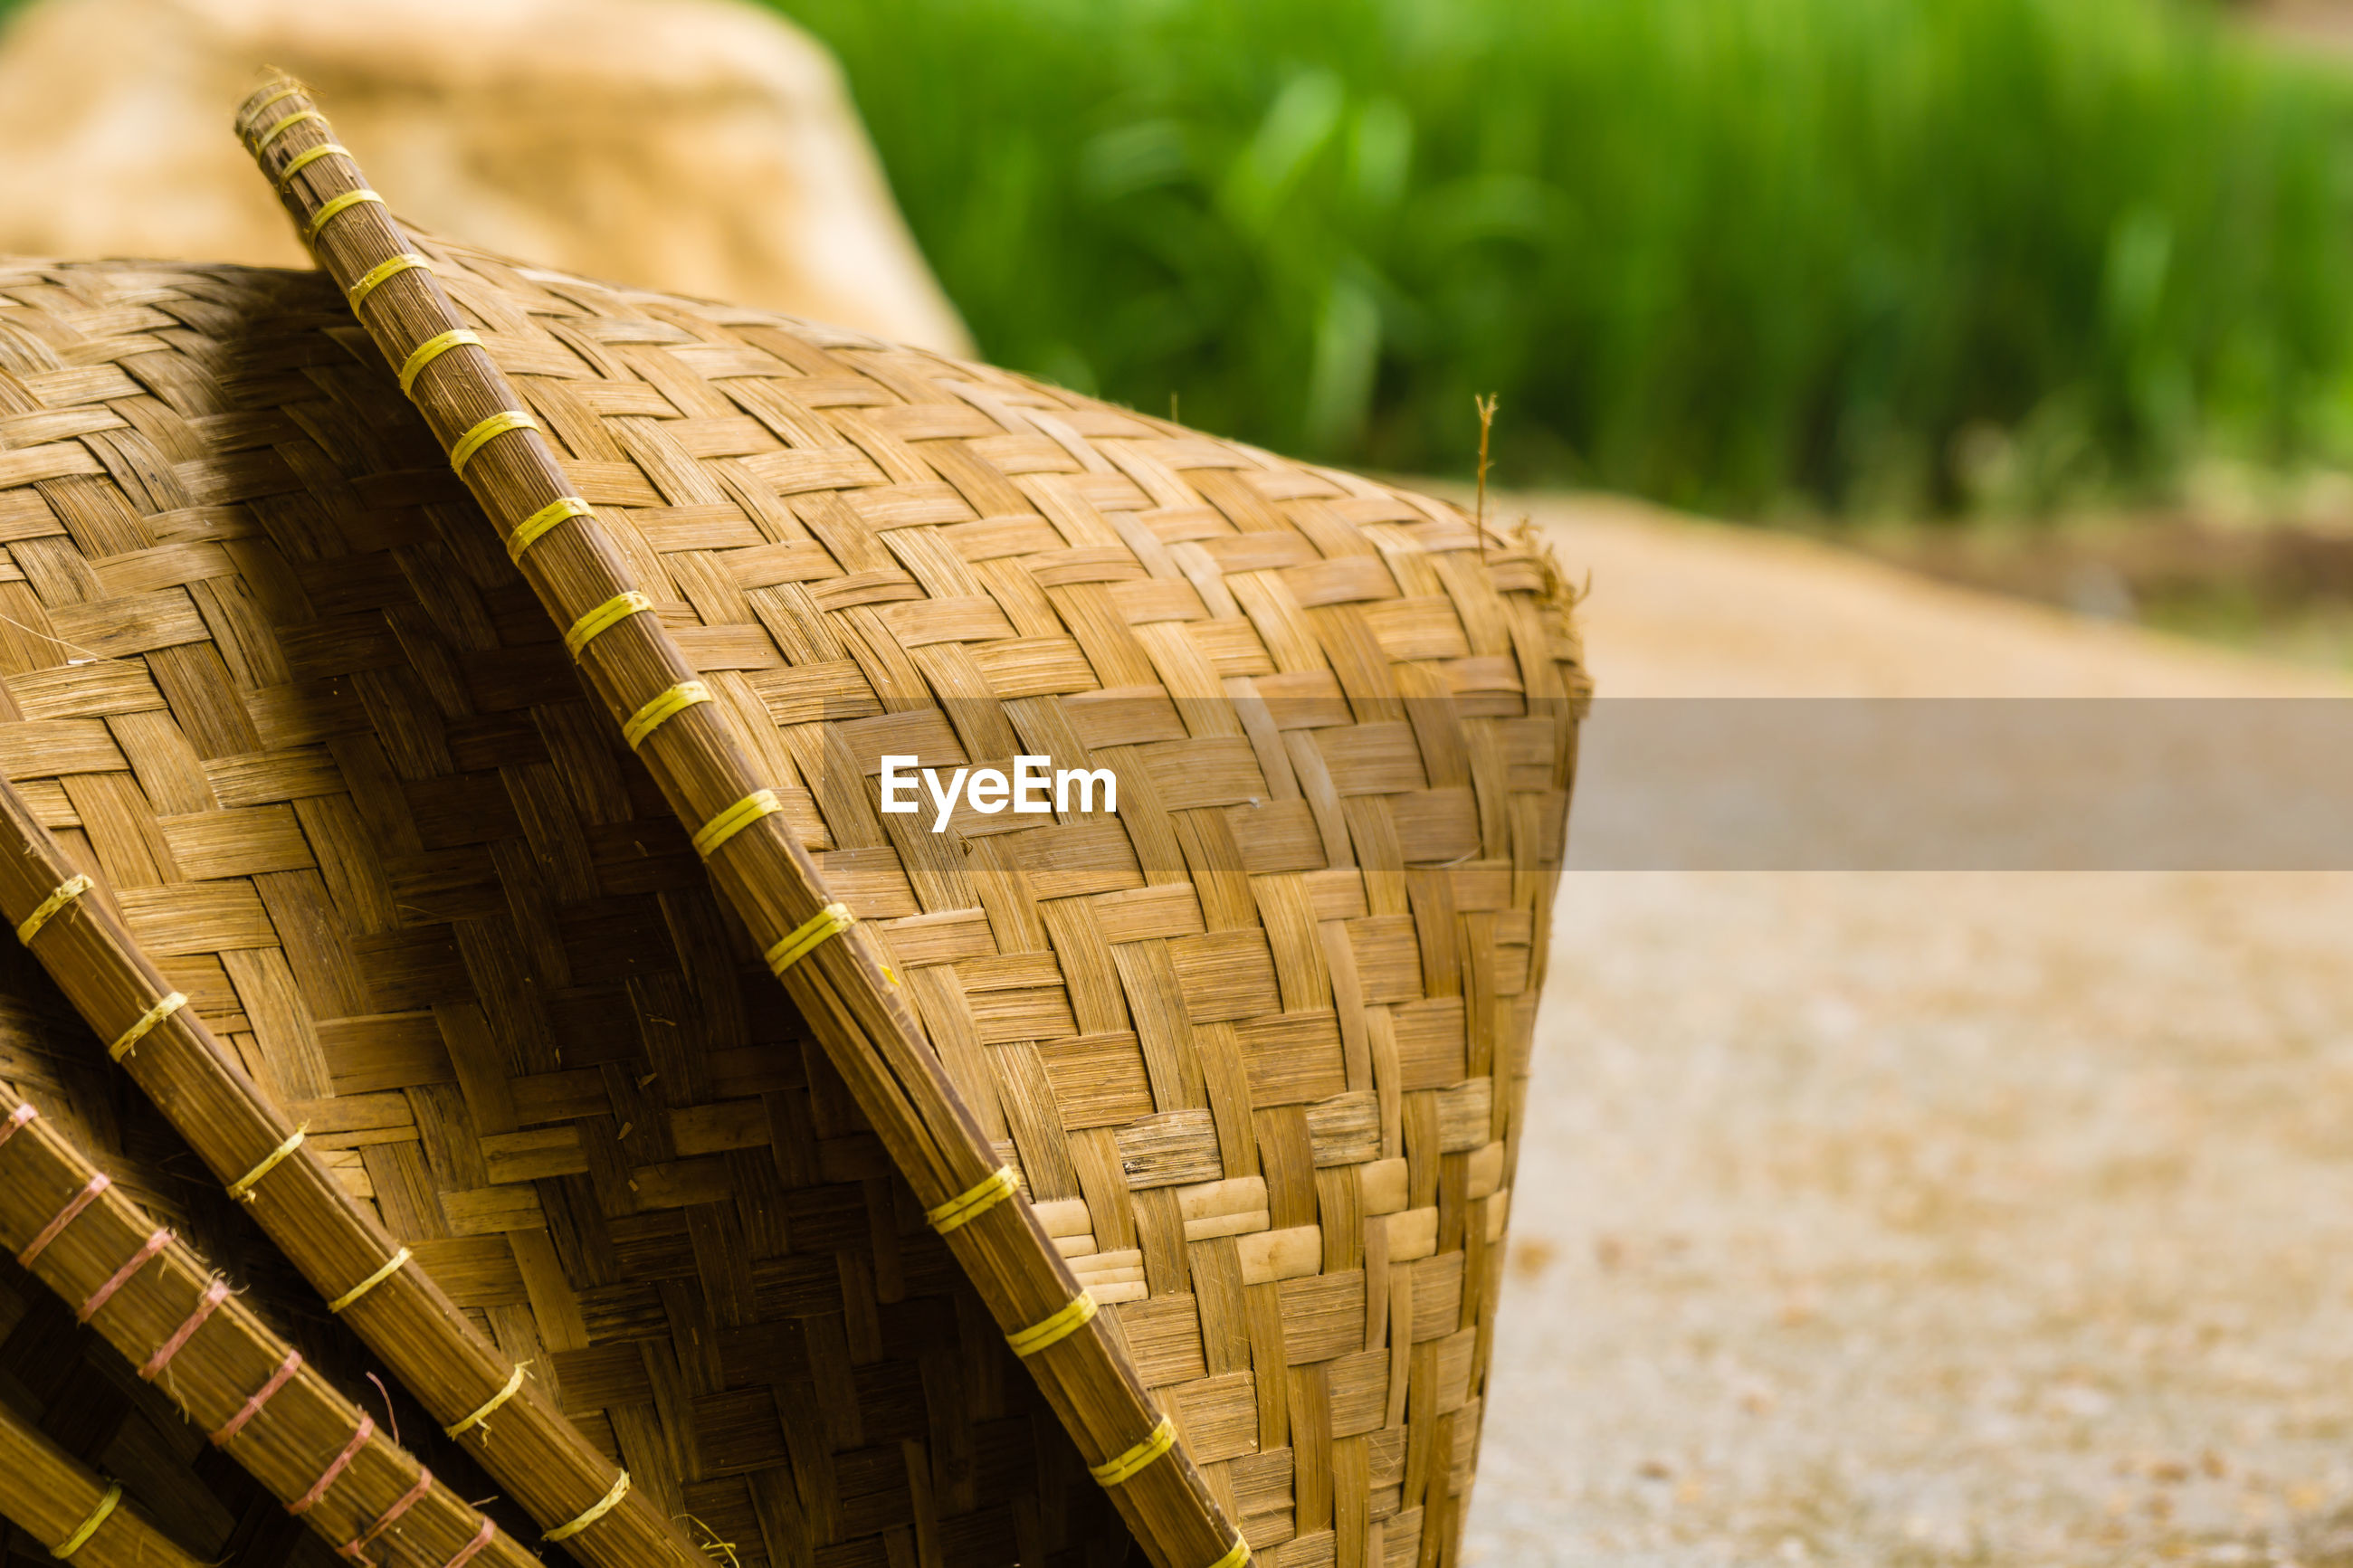 CLOSE-UP OF BASKET IN FIELD